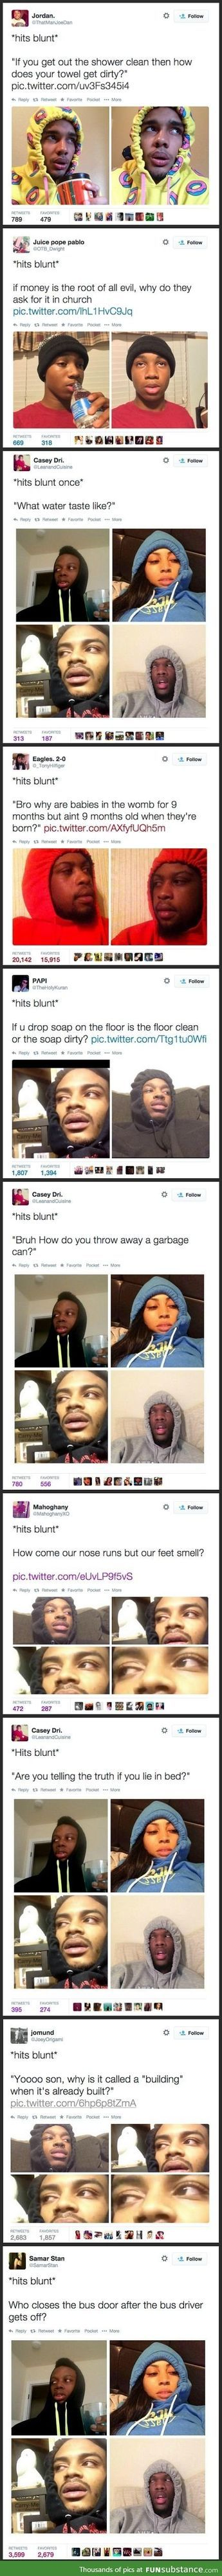 Things people say when they hit a blunt